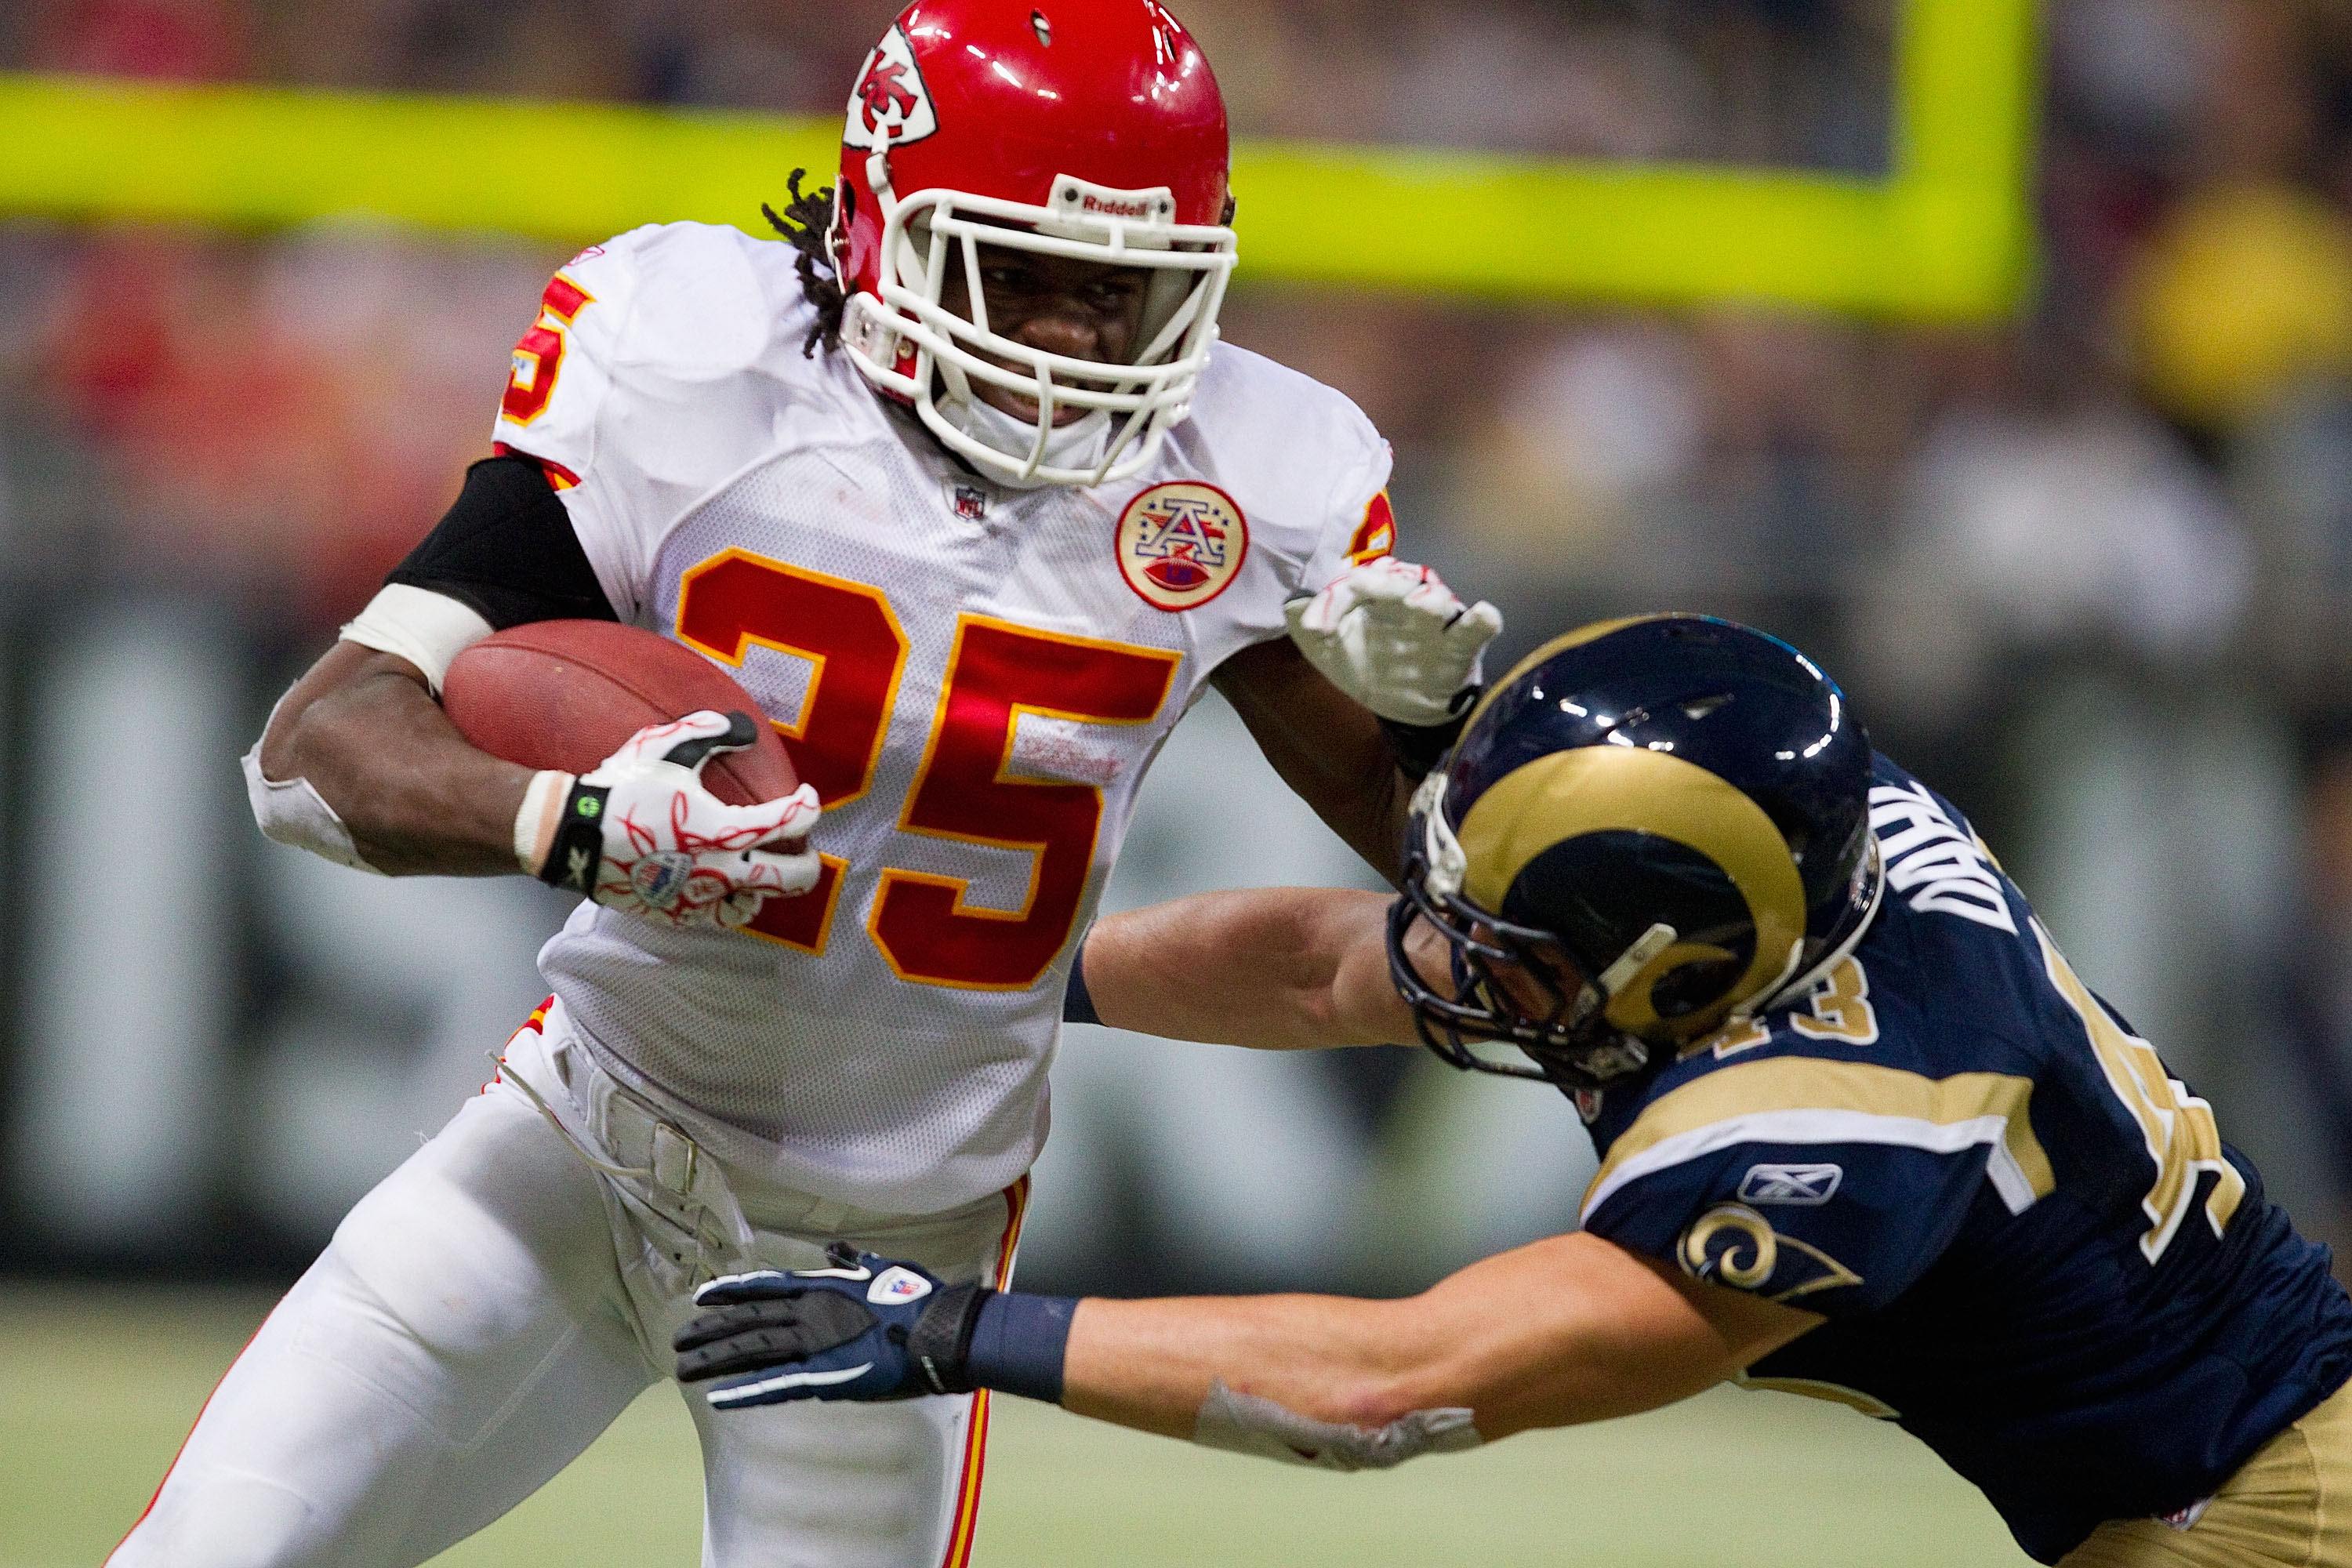 ST. LOUIS, MO - DECEMBER 19: Jamaal Charles #25 of the Kansas City Chiefs looks to get by Craig Dahl #43 of the St. Louis Rams at the Edward Jones Dome on December 19, 2010 in St. Louis, Missouri.  The Chiefs beat the Rams 27-13.  (Photo by Dilip Vishwana